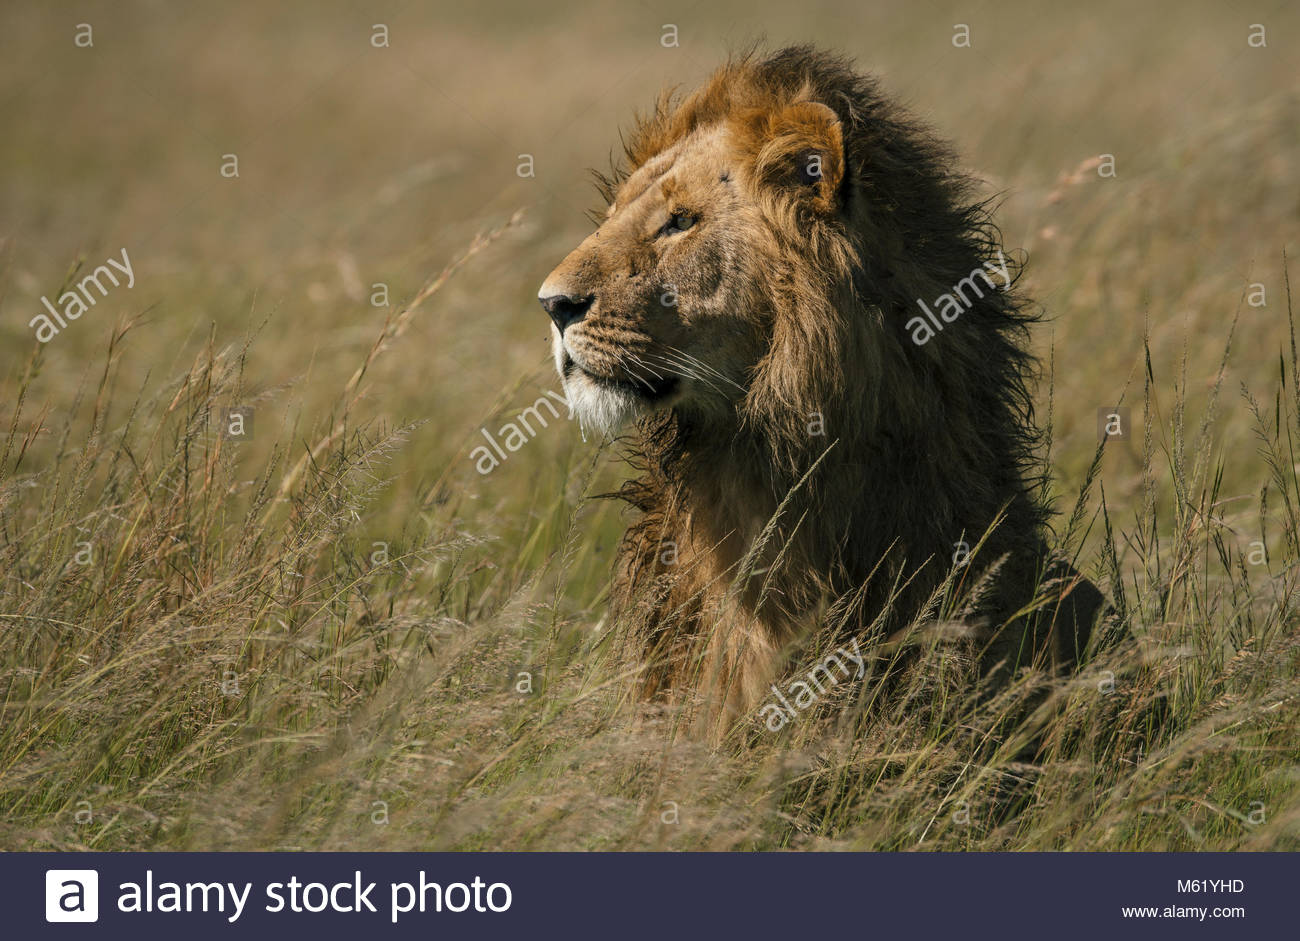 A male Lion, Panthera leo, resting in the long grass in Masai Mara National Park. - Stock Image